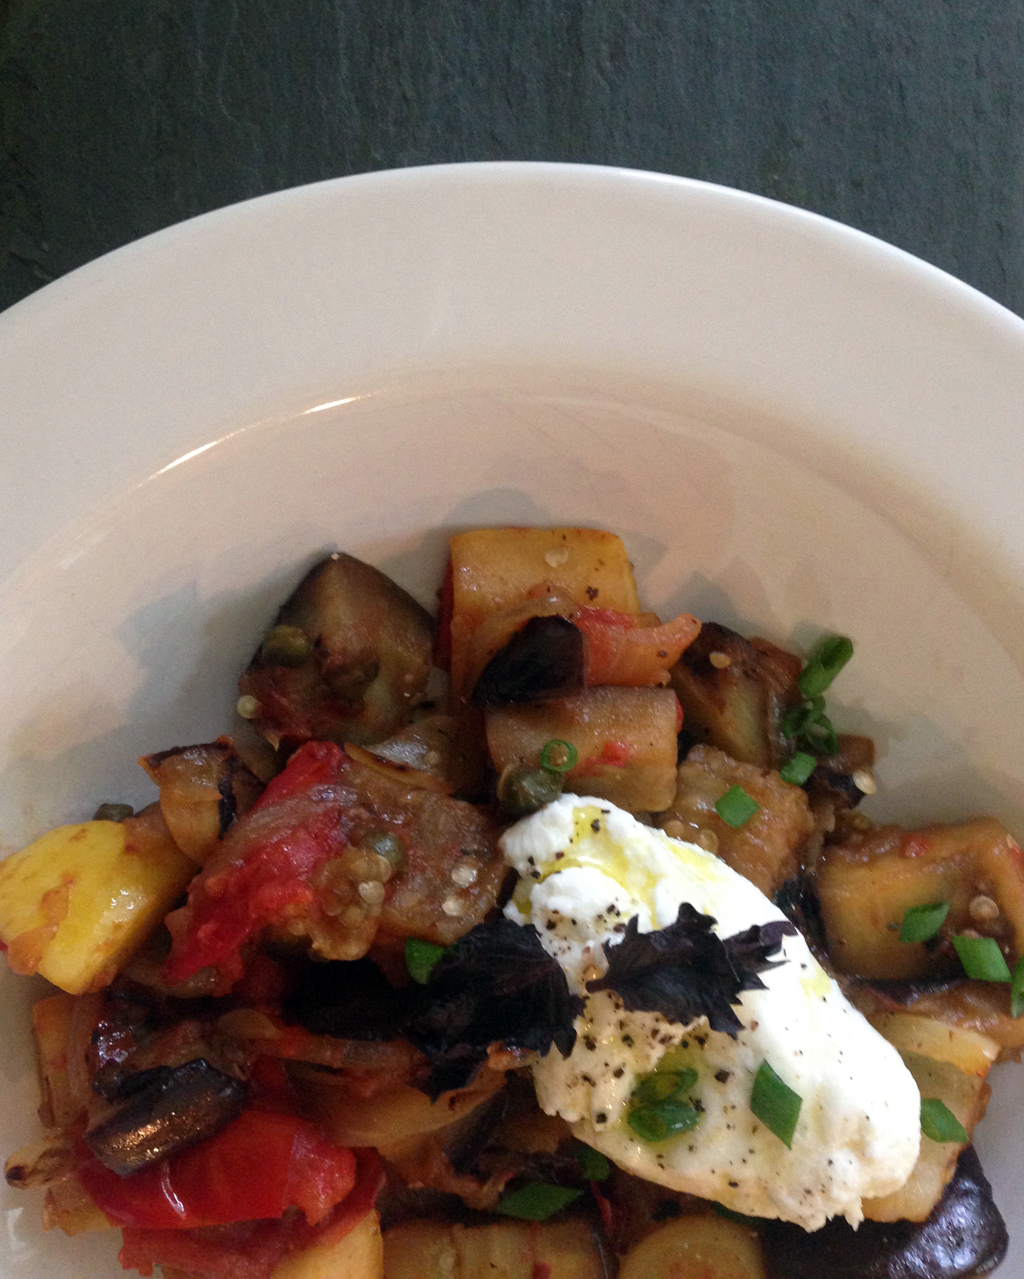 Ratatouille with ricotta.